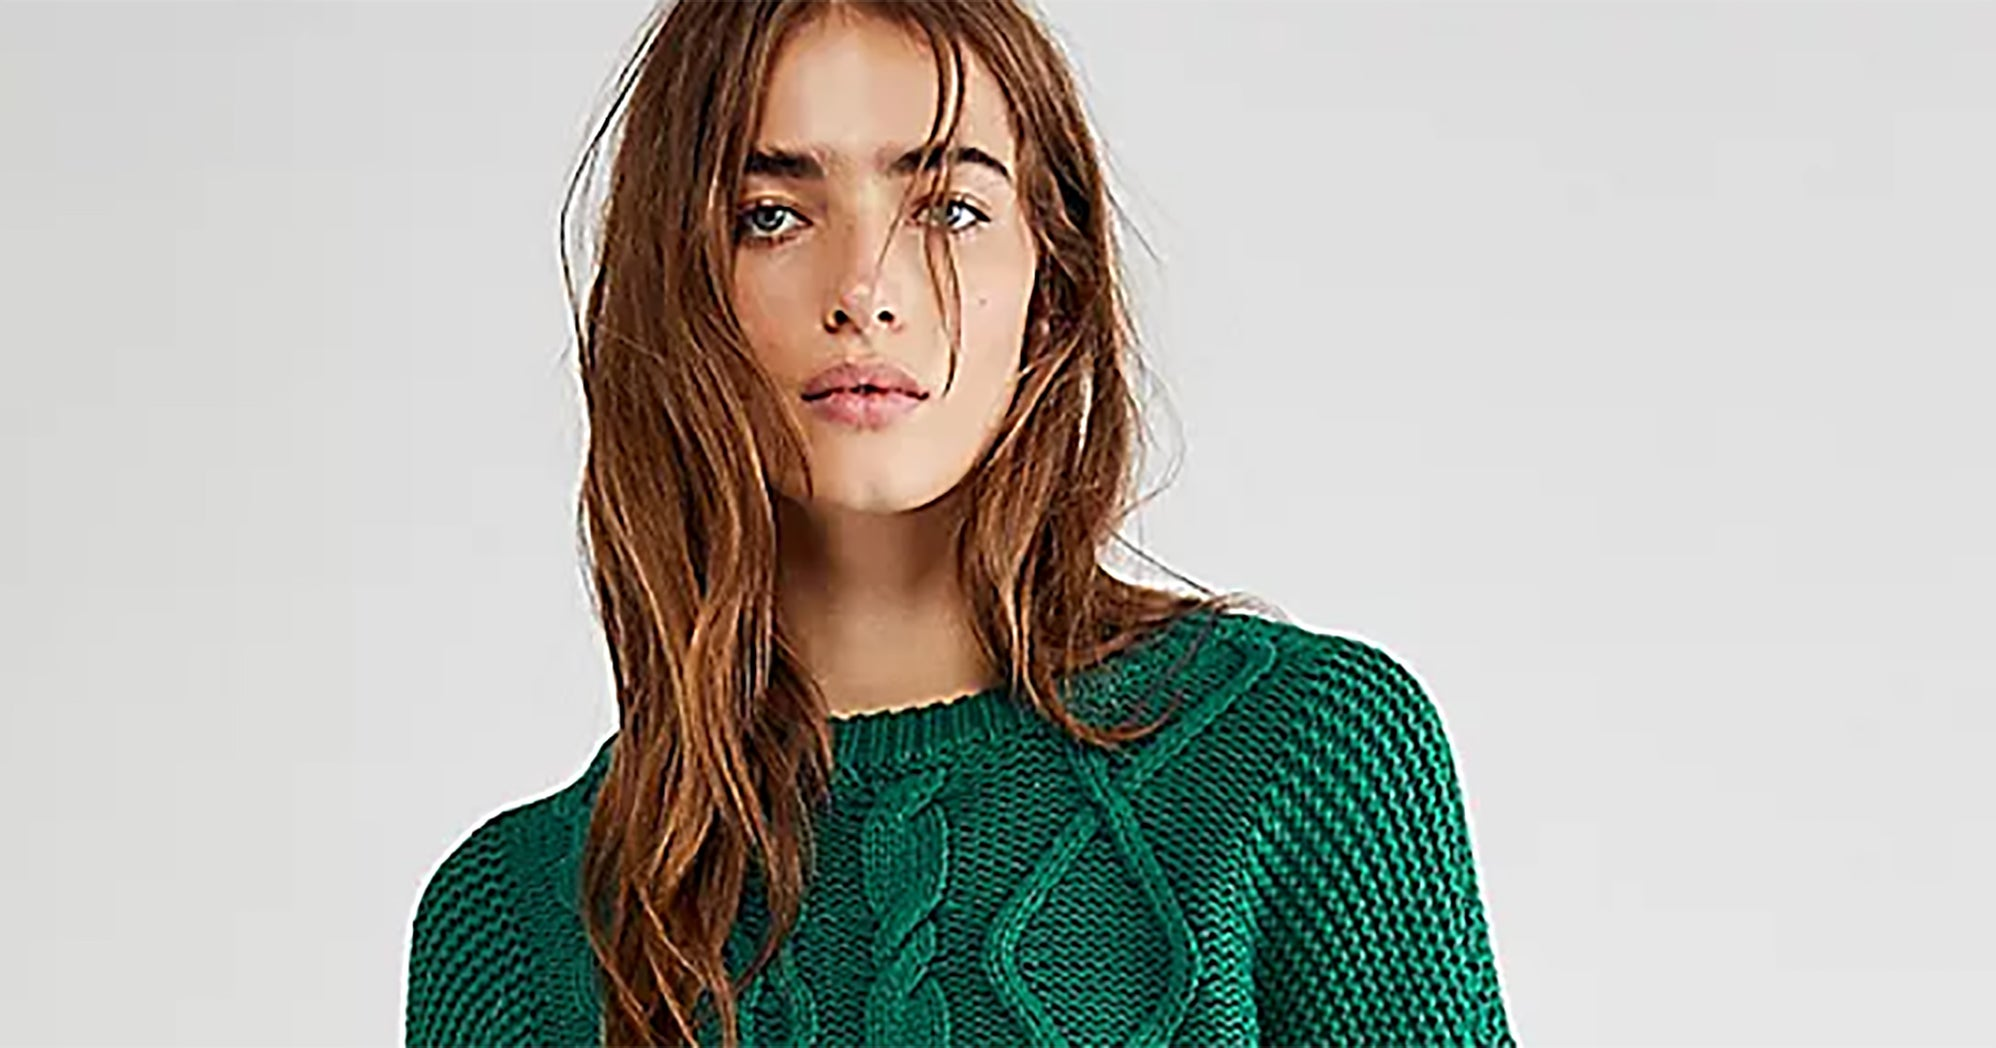 30 Classic Cable-Knit Sweaters That Got A Chic Update